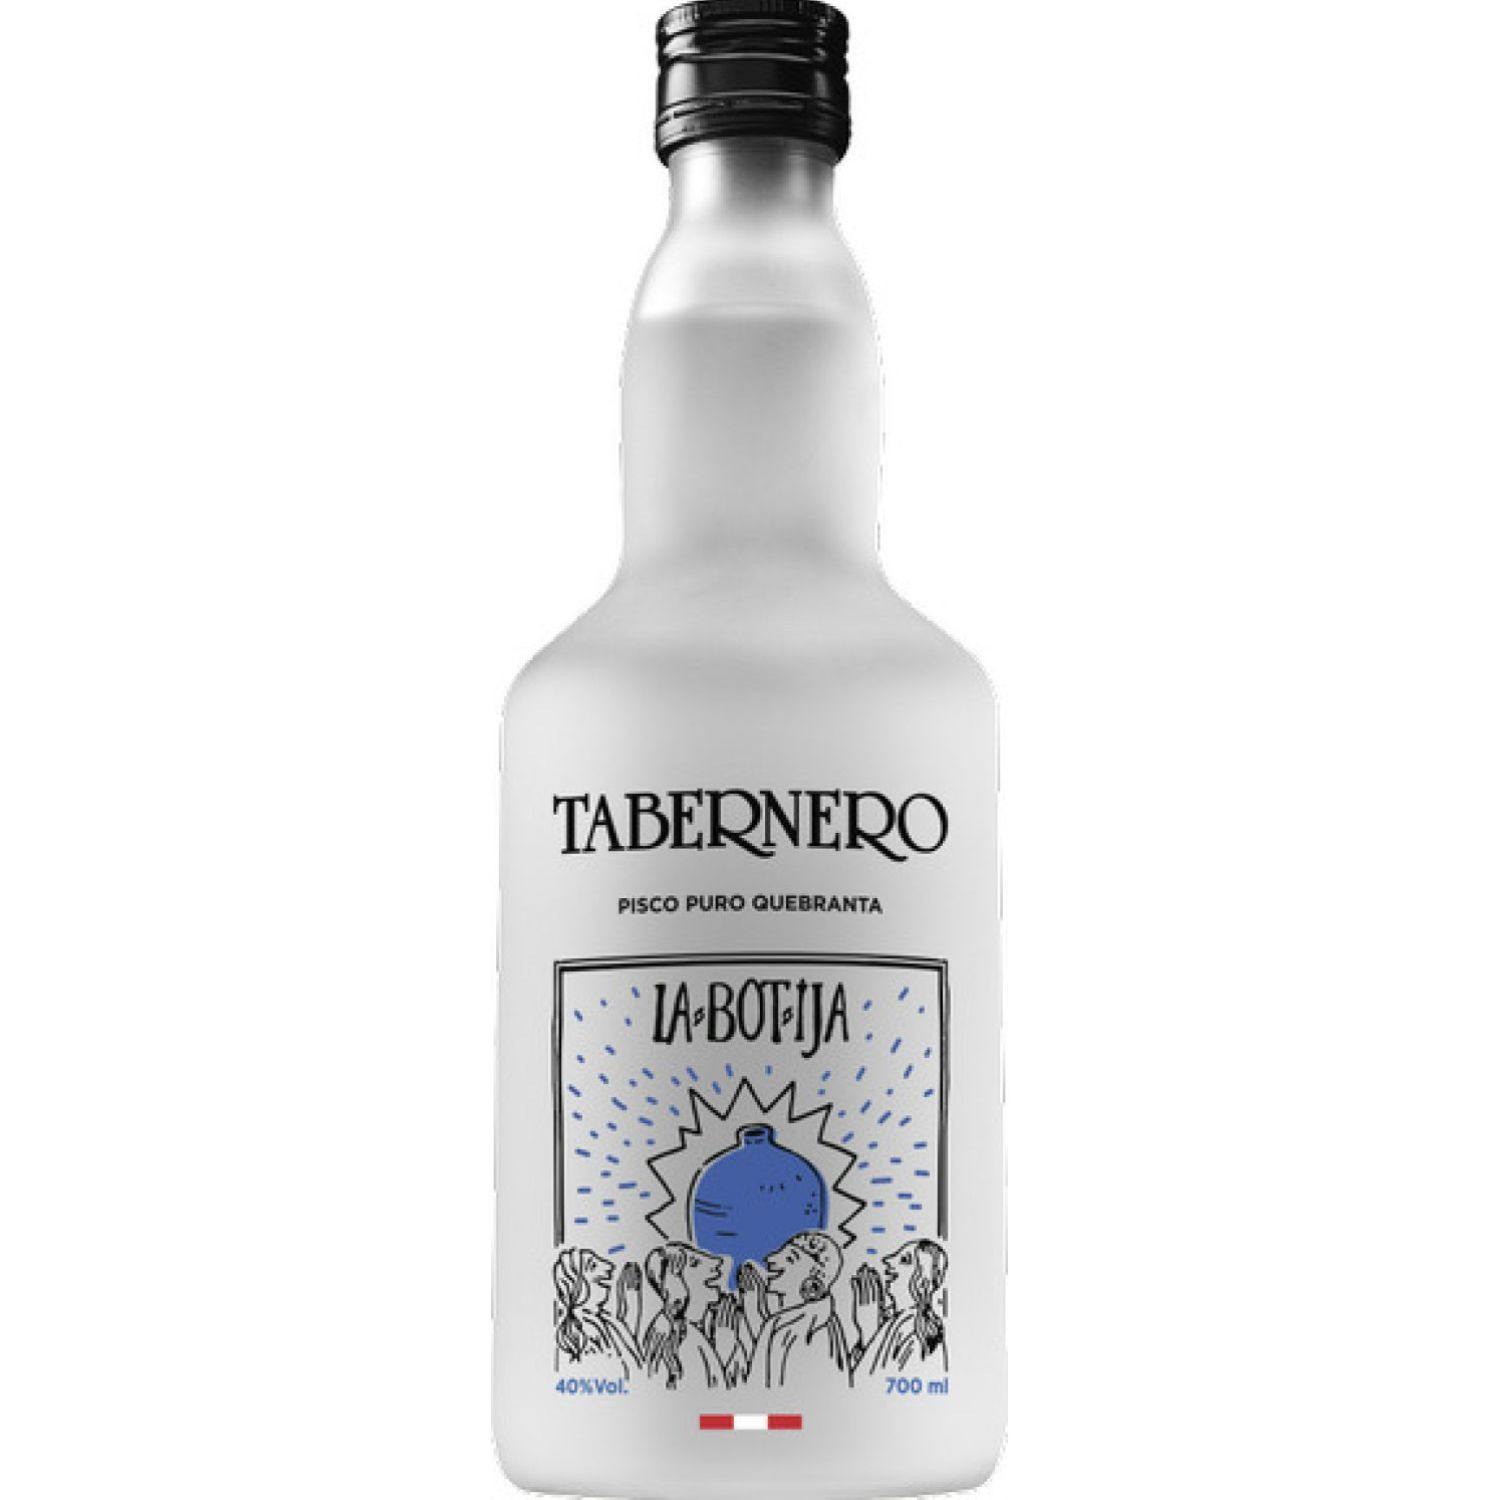 TABERNERO La Botija Pisco Quebranta  700ml Sin color Brandy y aguardientes